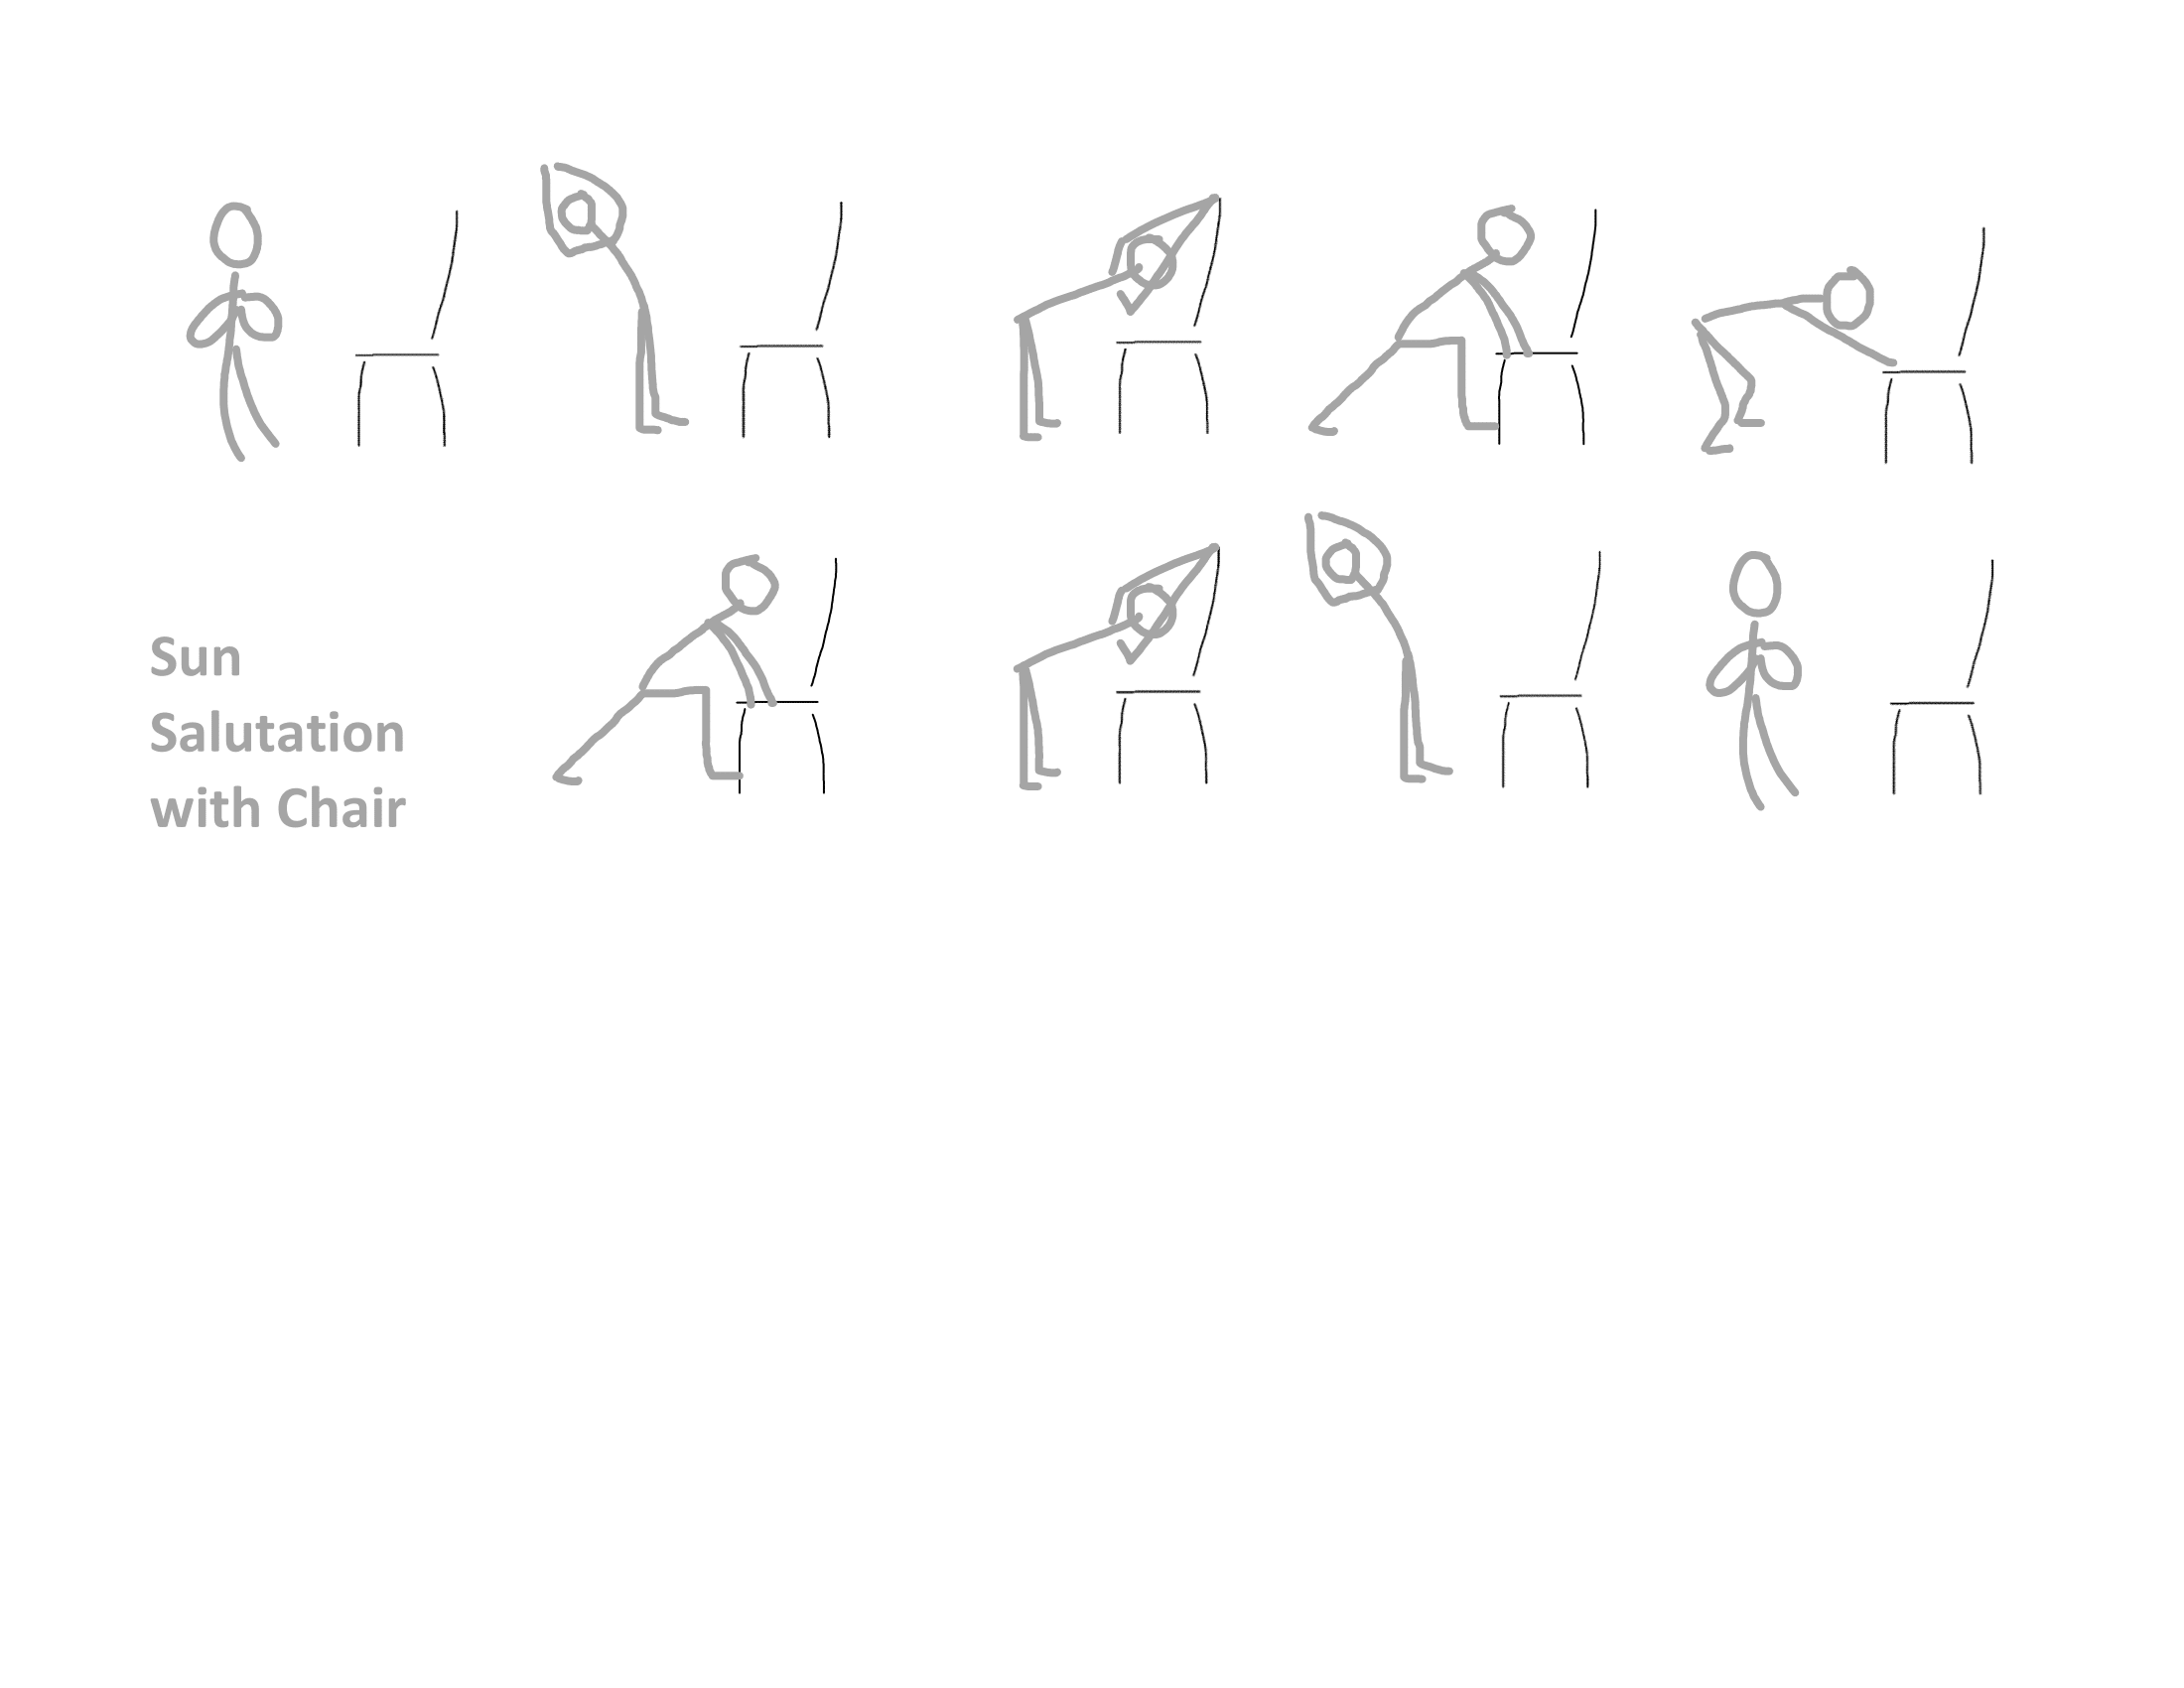 Sun Salutation With A Chair